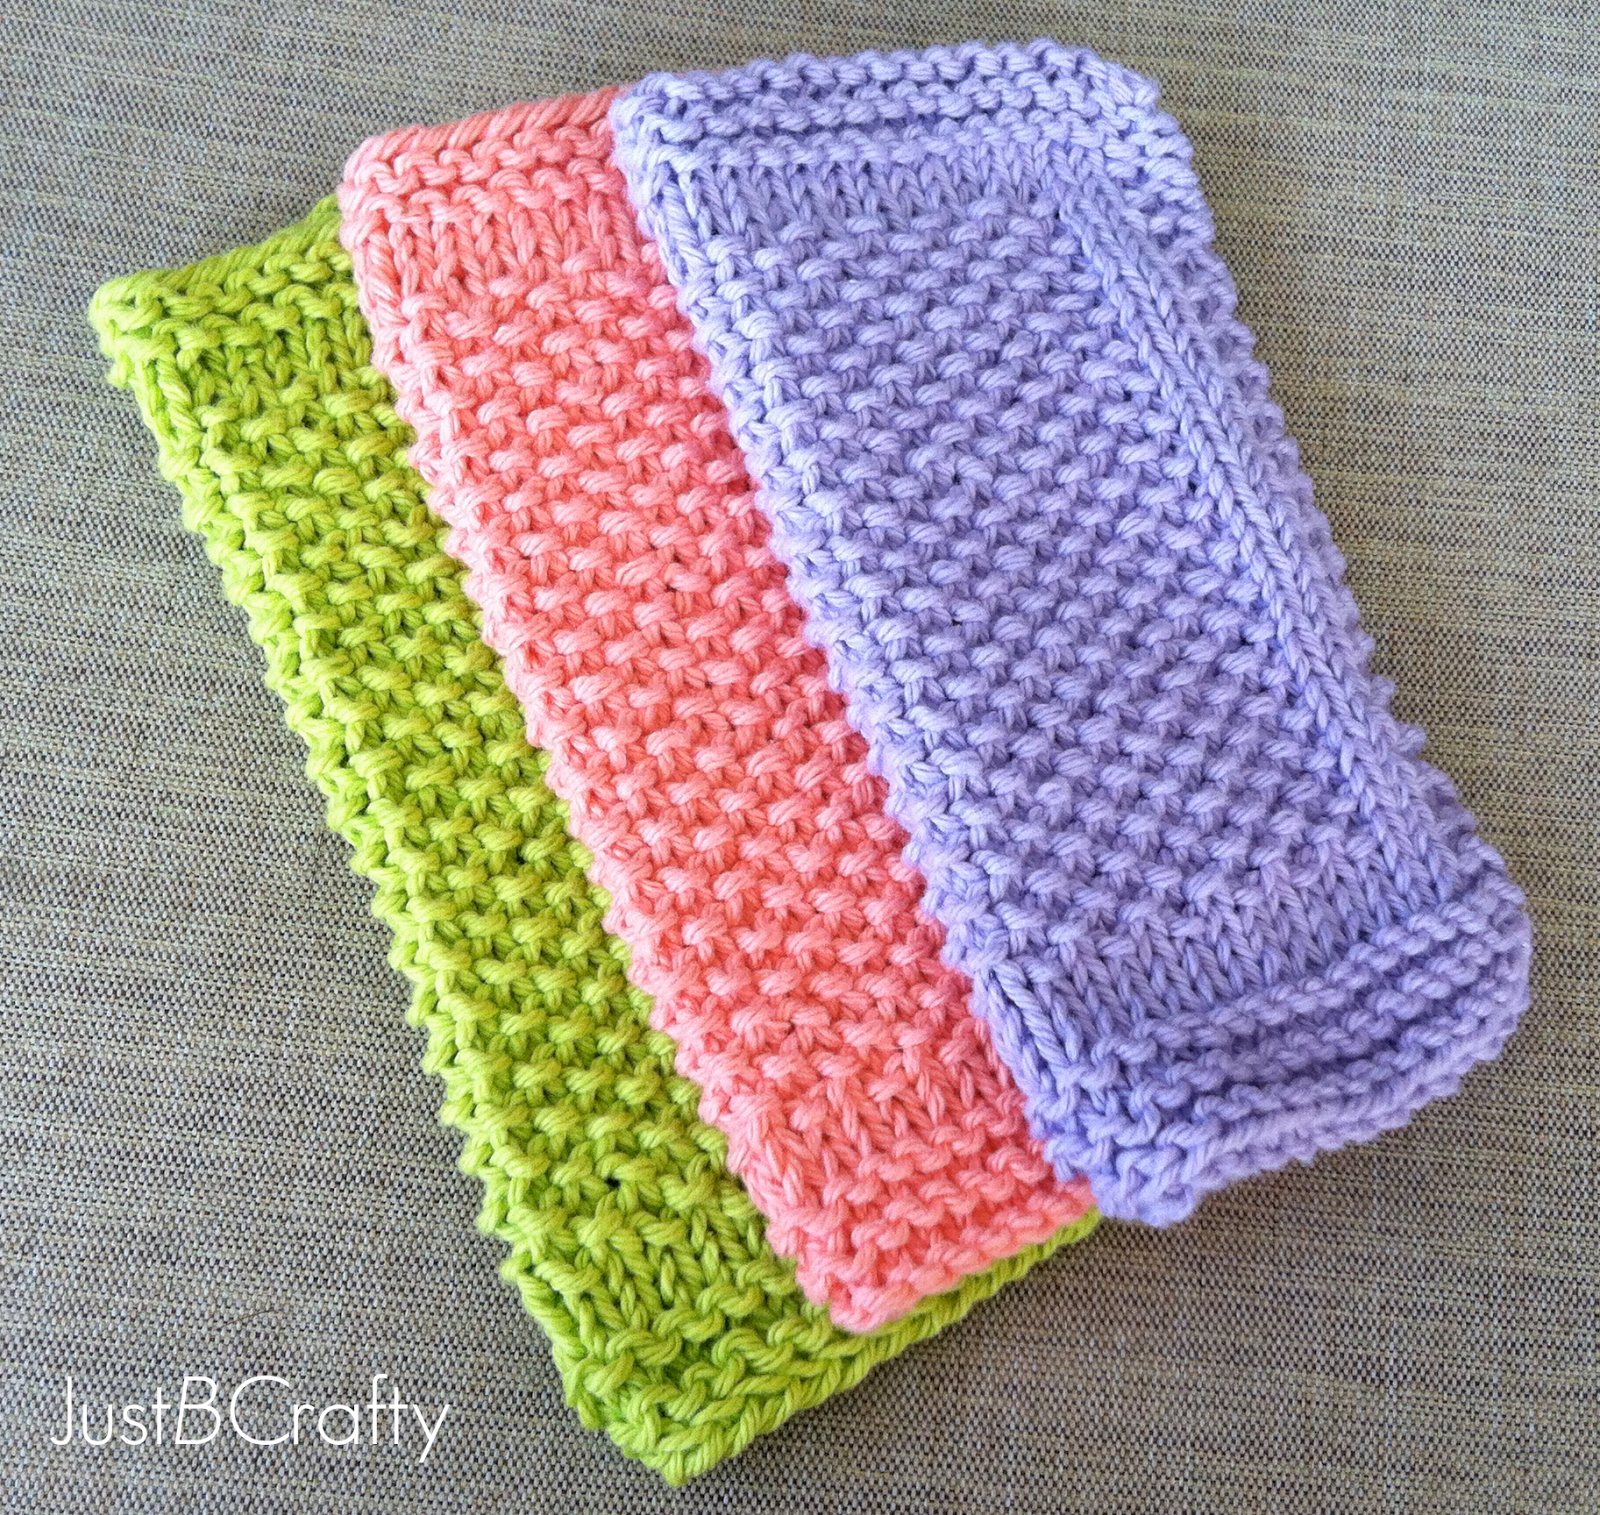 Free Knitting Patterns Dishcloths Alphabet : Seed Stitch Dishcloths - Just Be Crafty